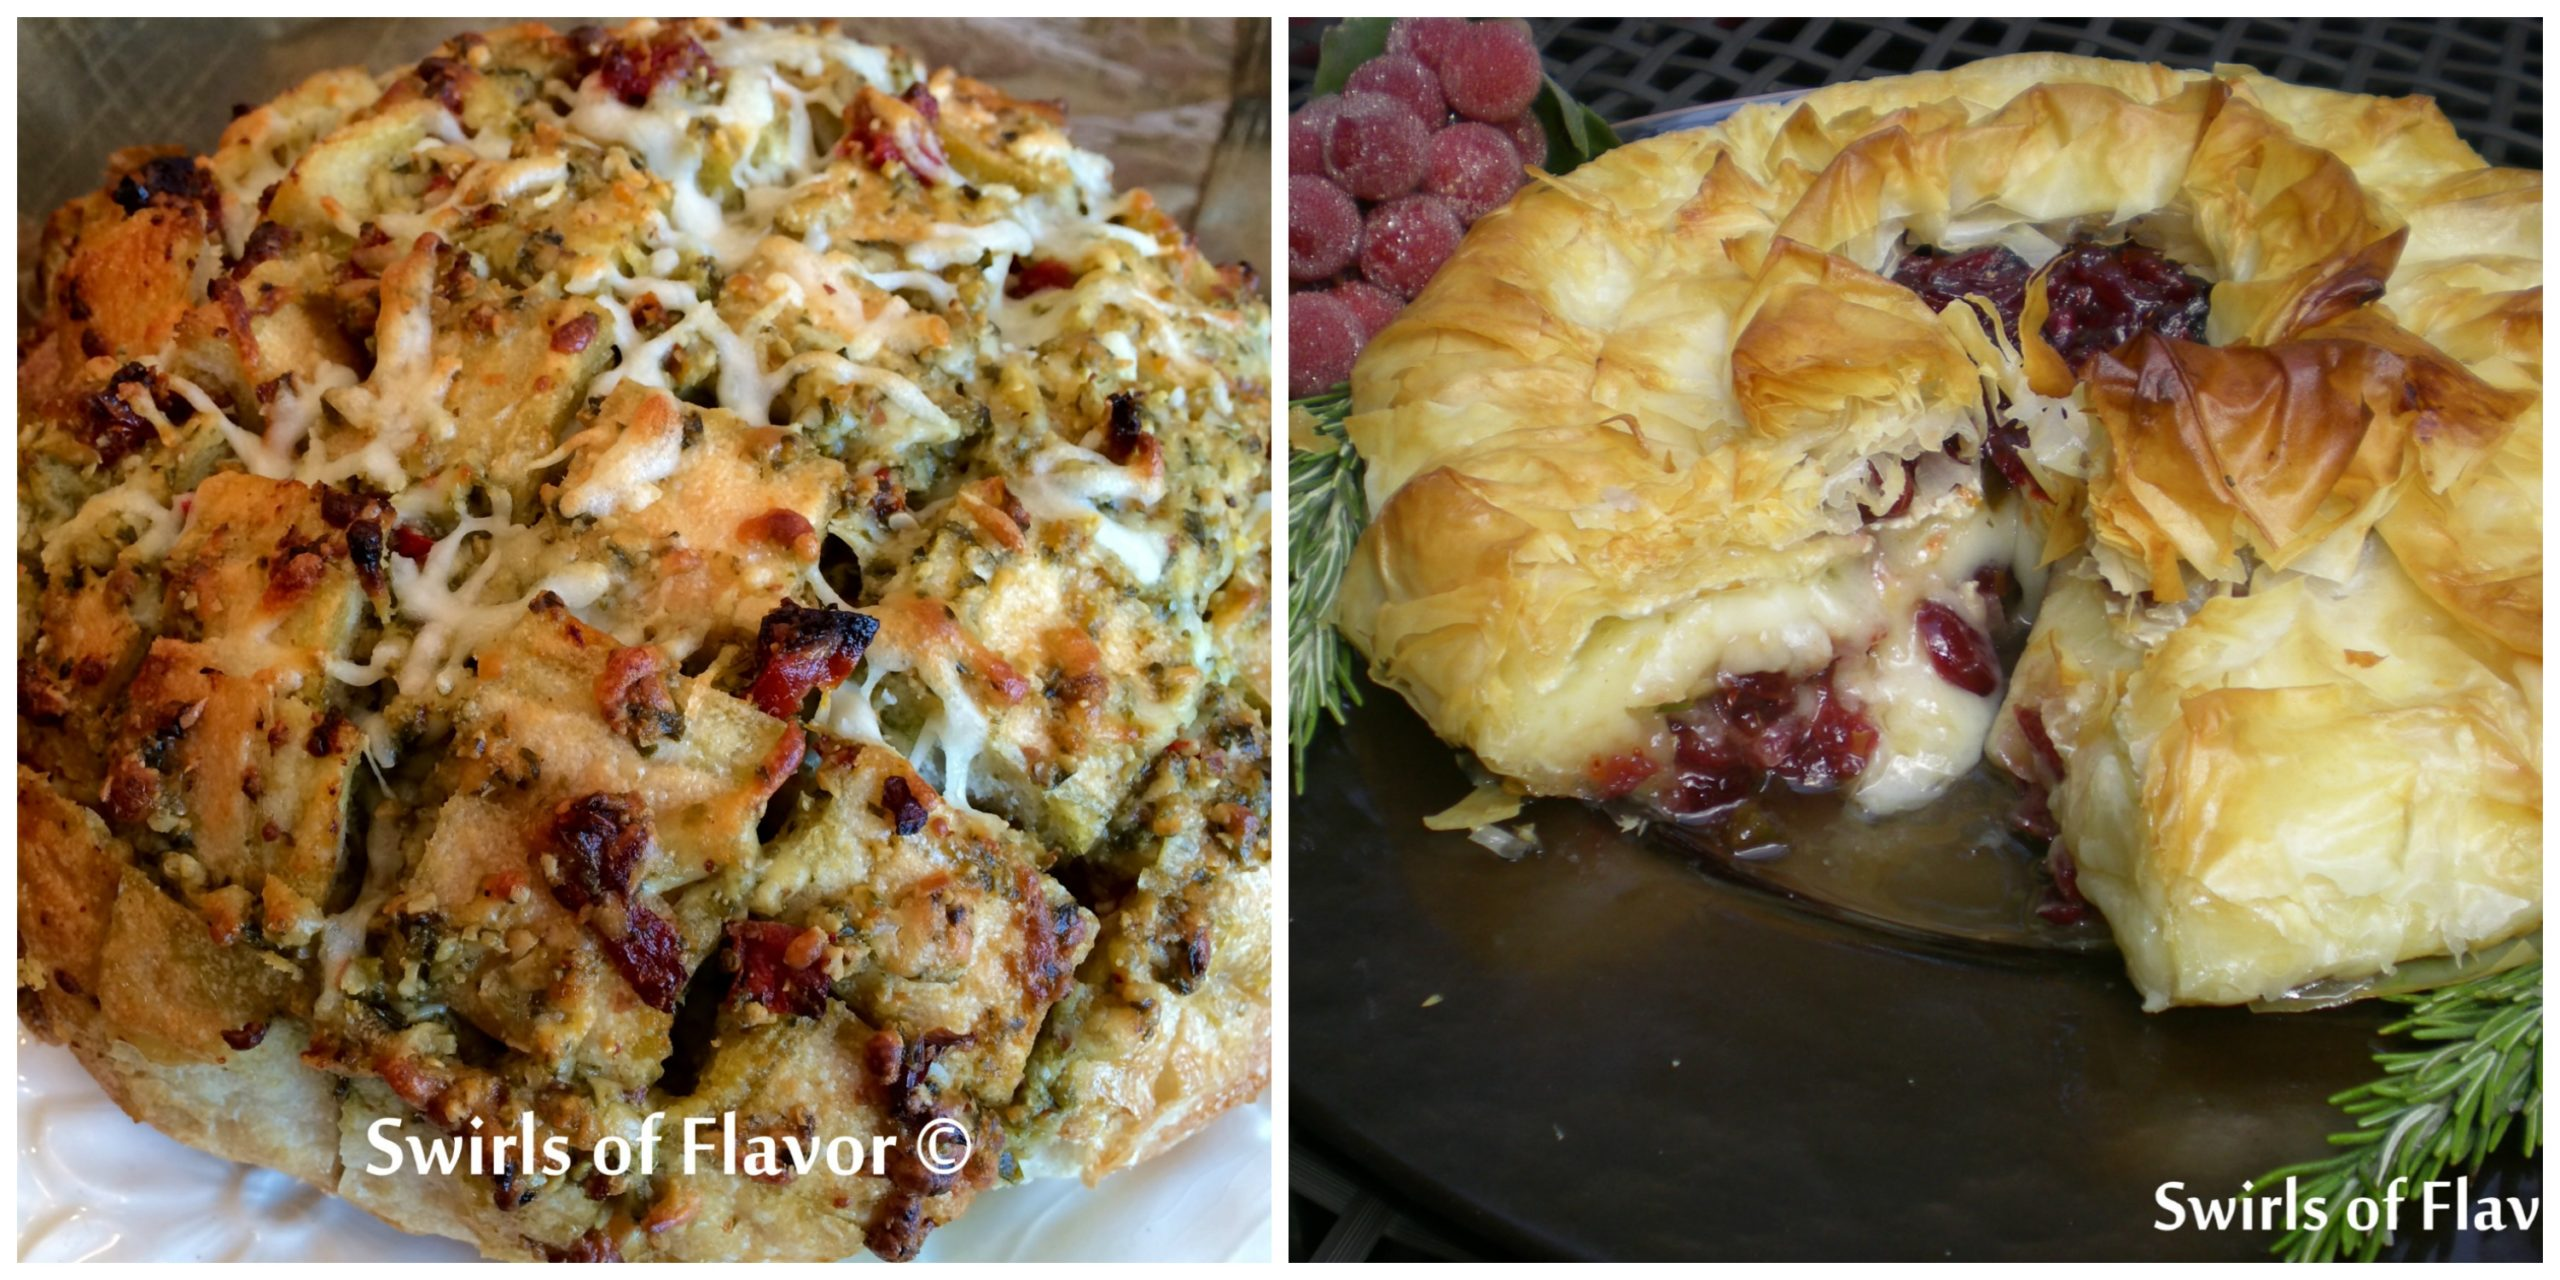 Pull Apart Bread and Baked Brie